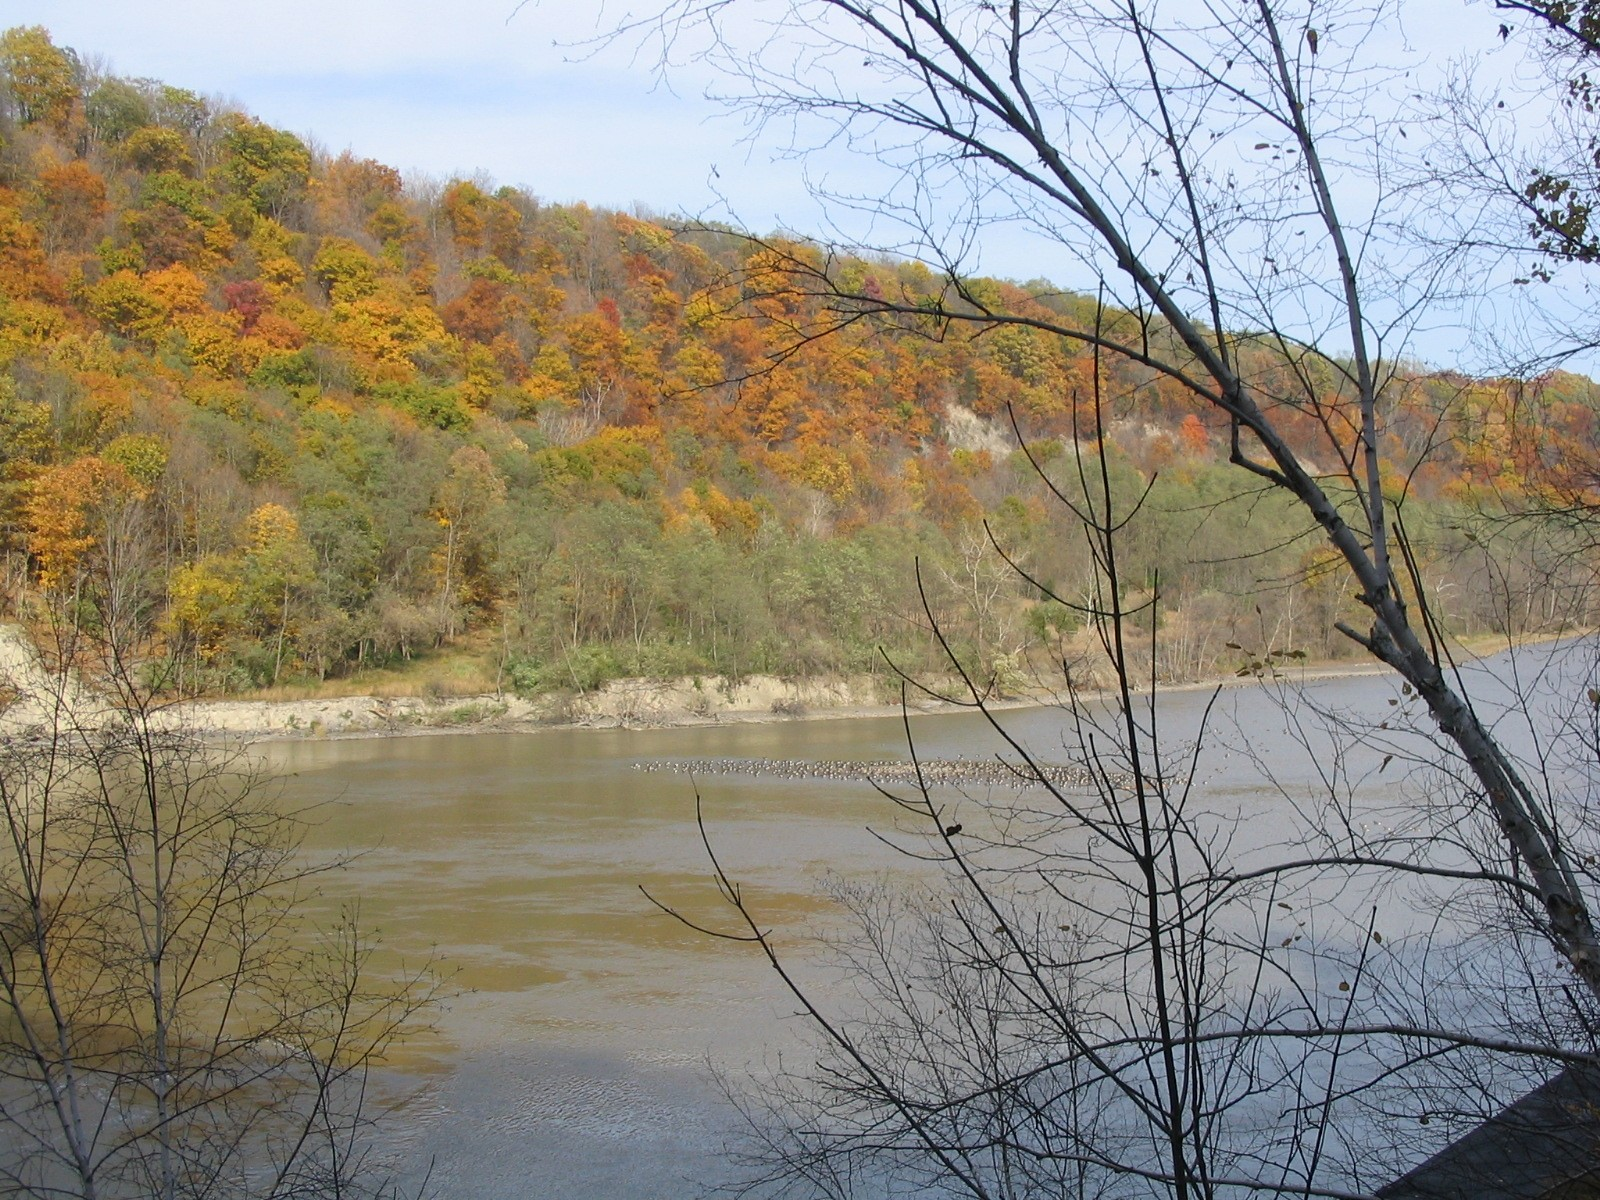 Photograph of the Genesee River at Mt. Morris Dam, NY (MMDN6) looking downstream